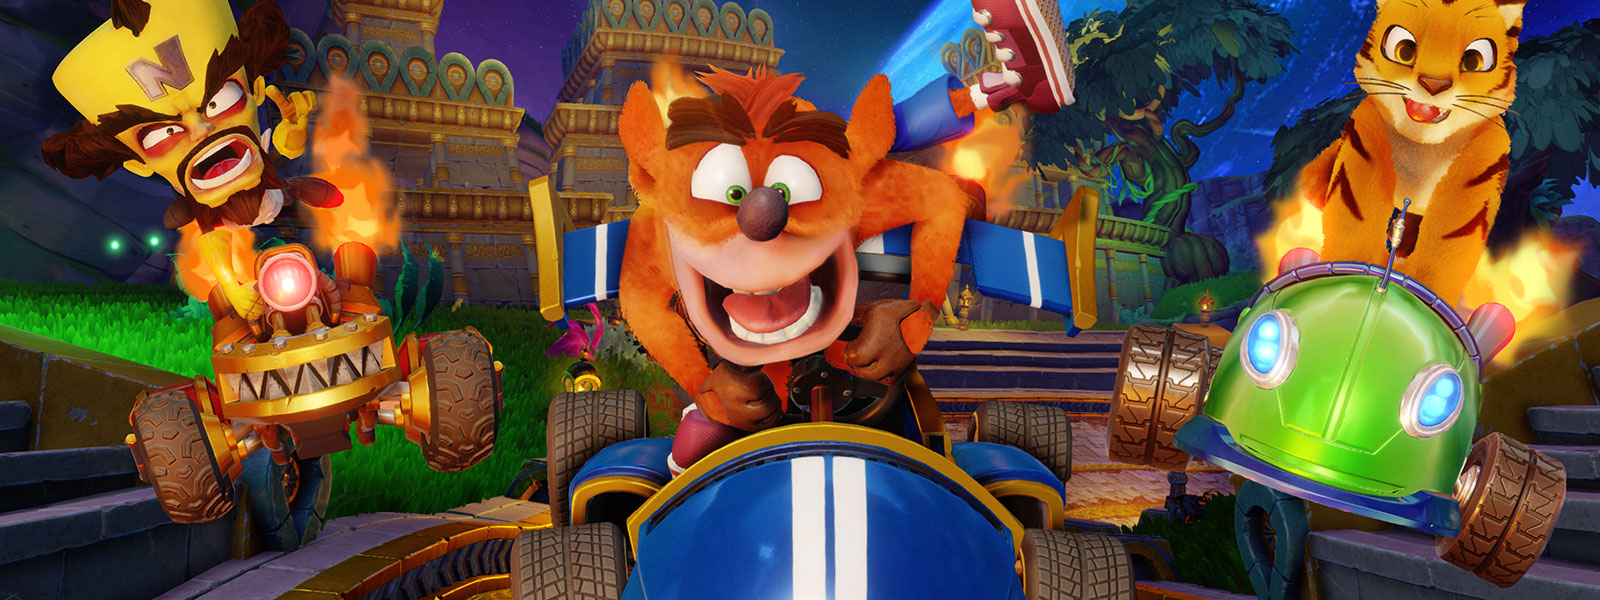 Crash%20Team%20Racing%20Nitro-Fueled%20%